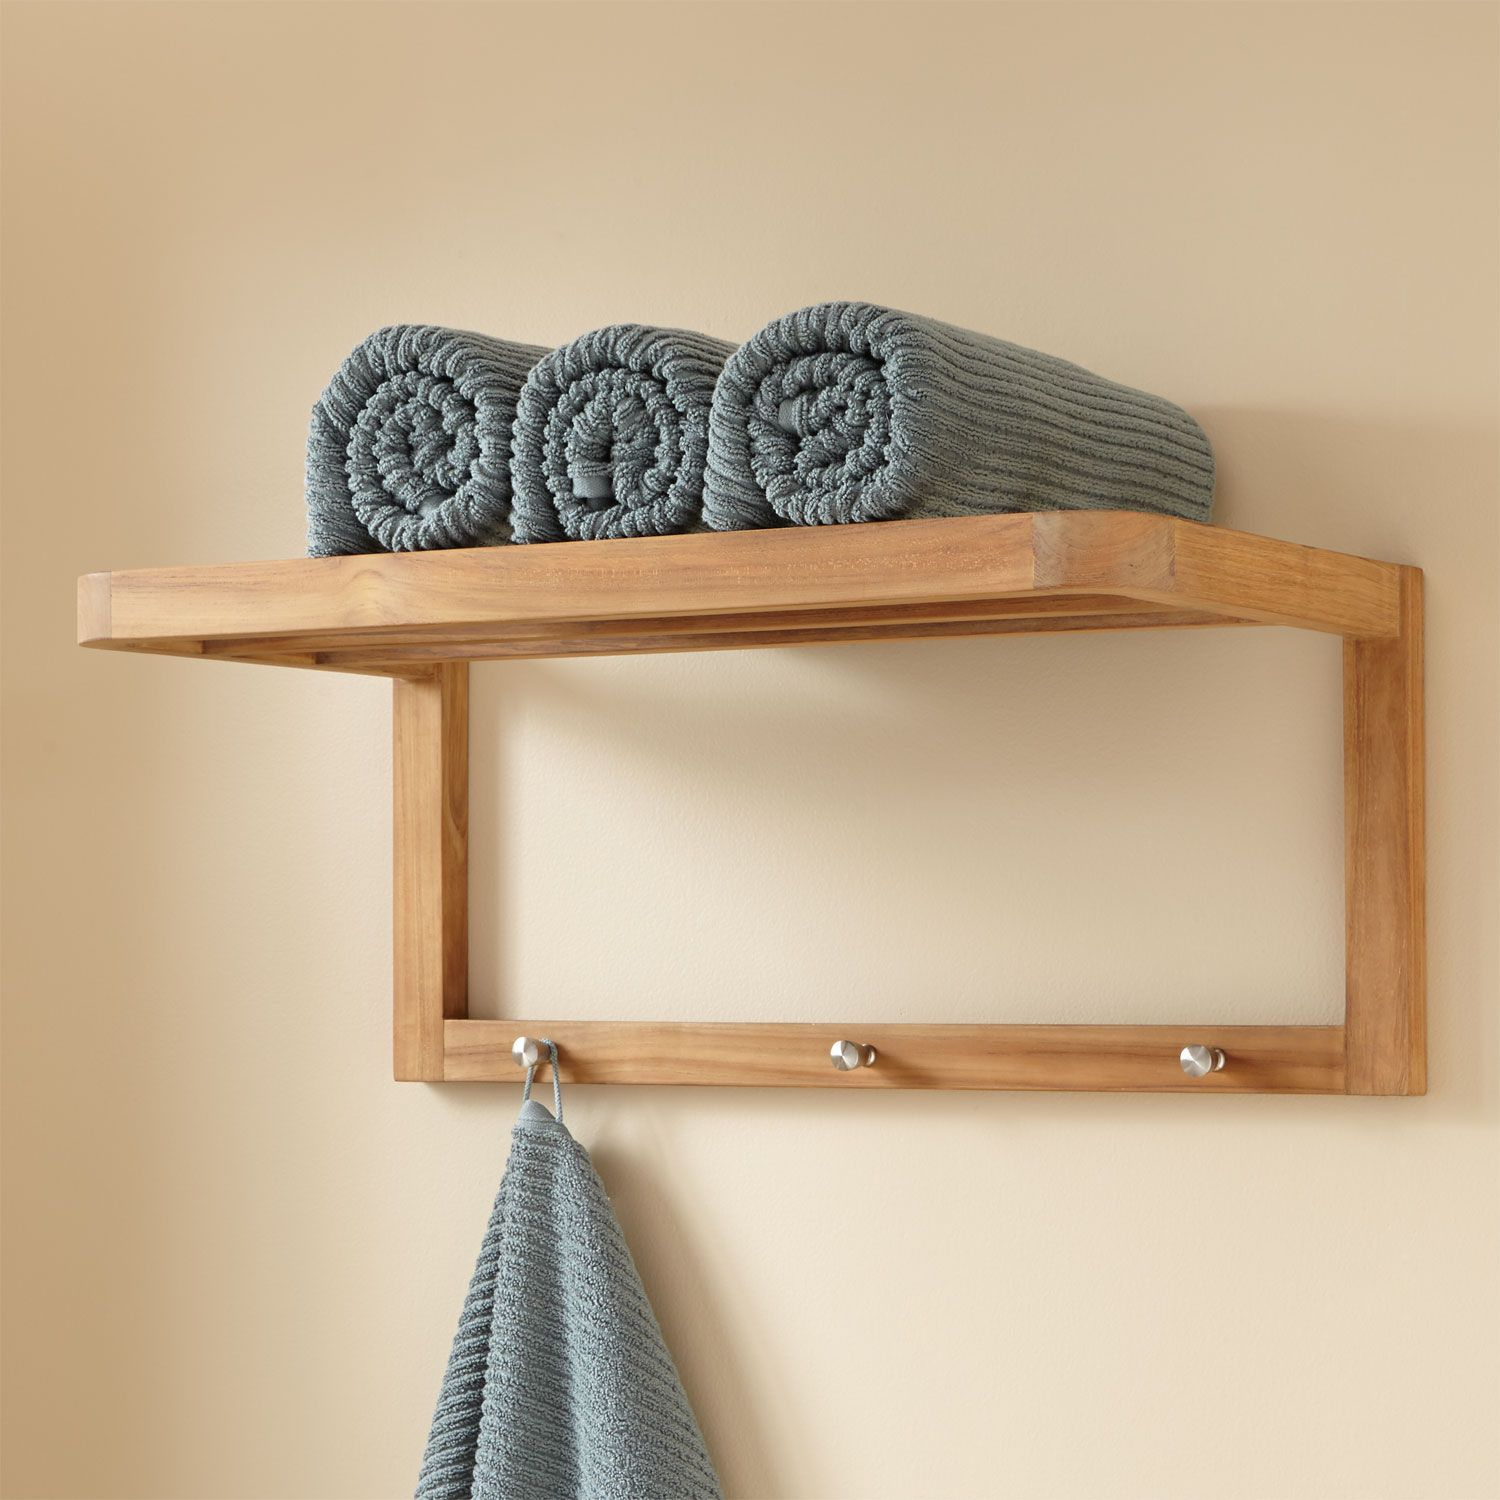 Pathein Bamboo Towel Rack With Hooks Pathein